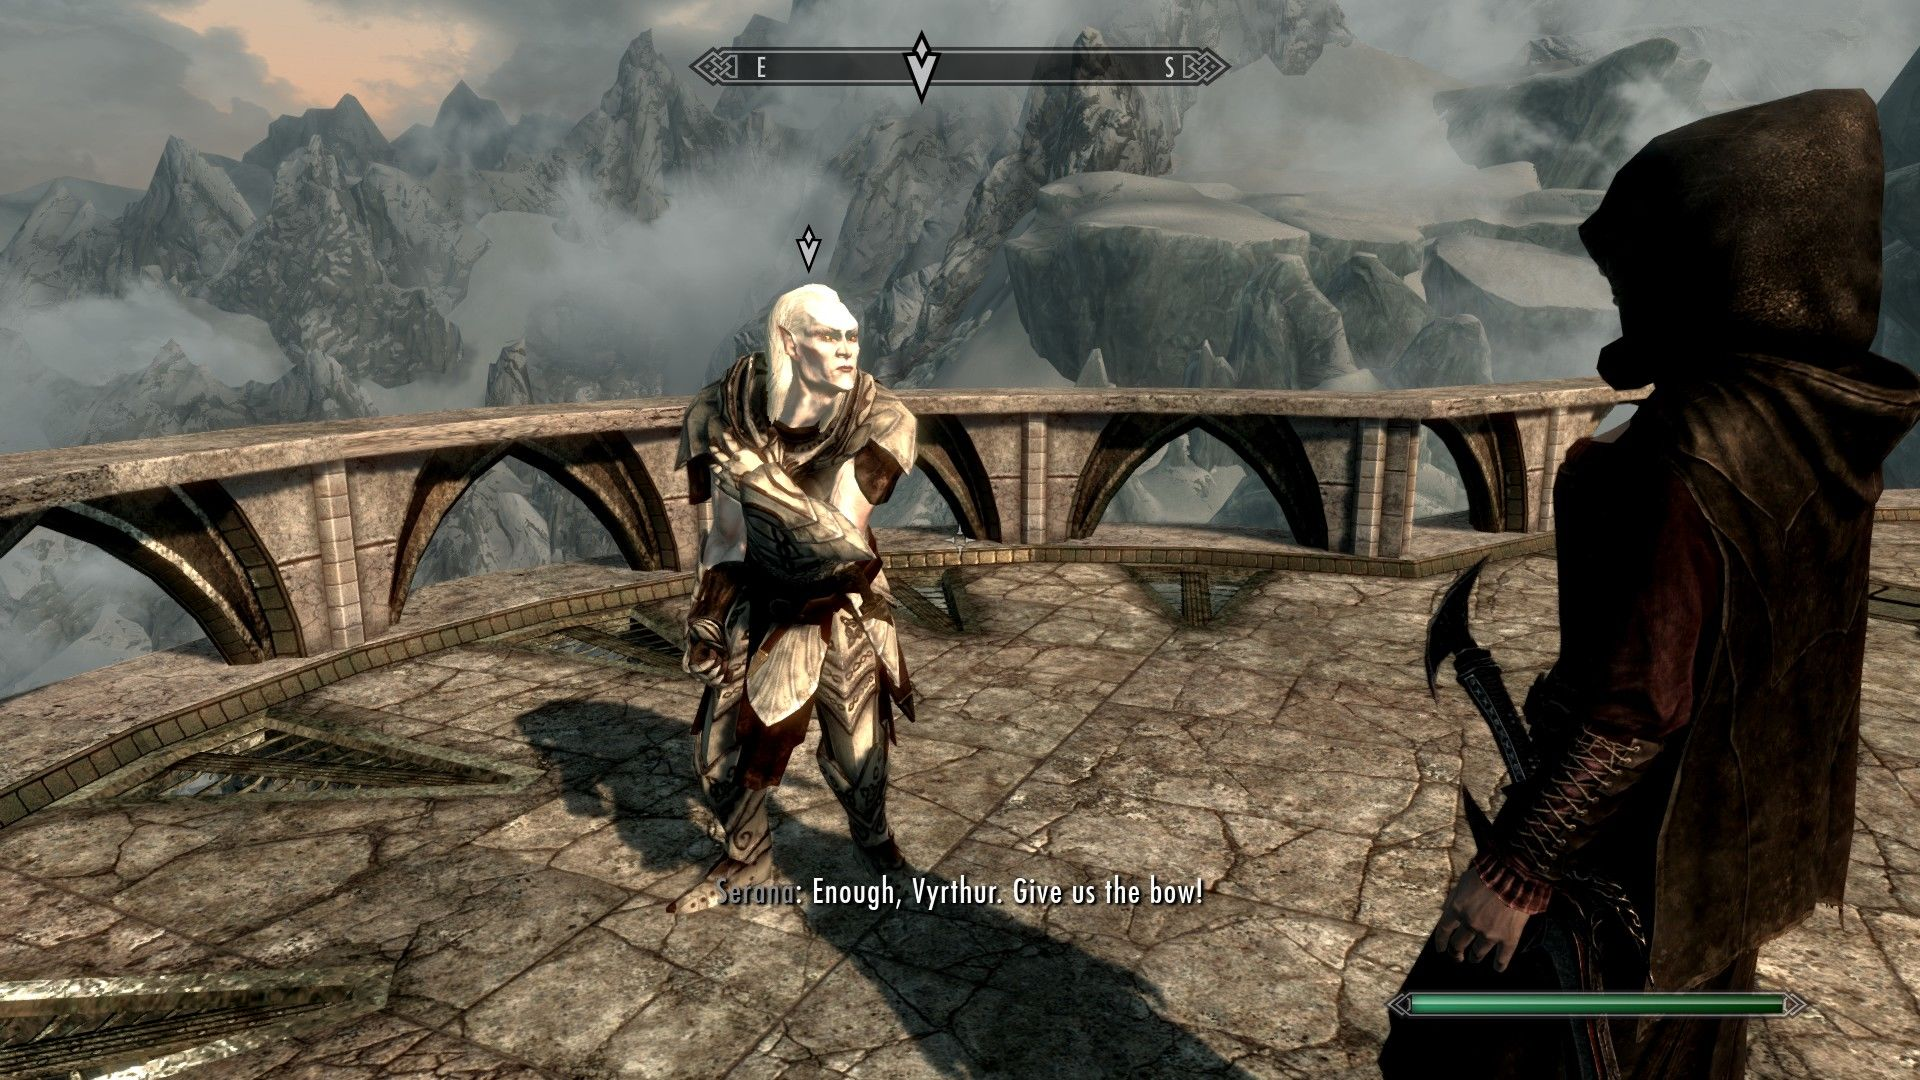 The elder scrolls v skyrim dawnguard screenshots for windows the elder scrolls v skyrim dawnguard windows vyrthurx27s last moments voltagebd Choice Image